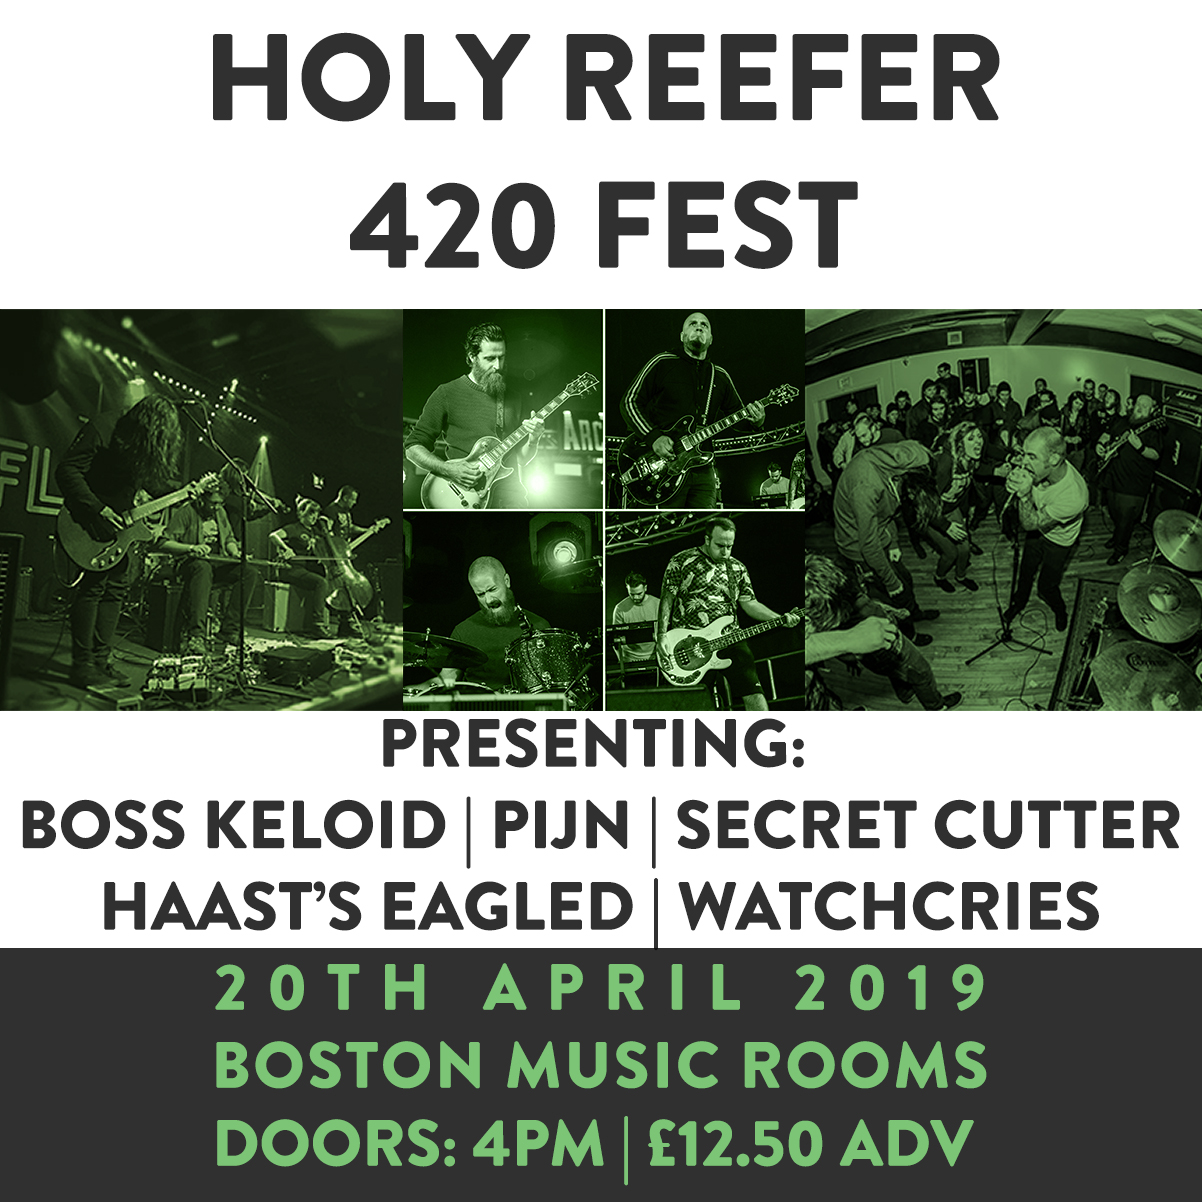 Holy Reefer 420 fest @ The Boston Music Rooms , London 20/04/19 (e-ticket)